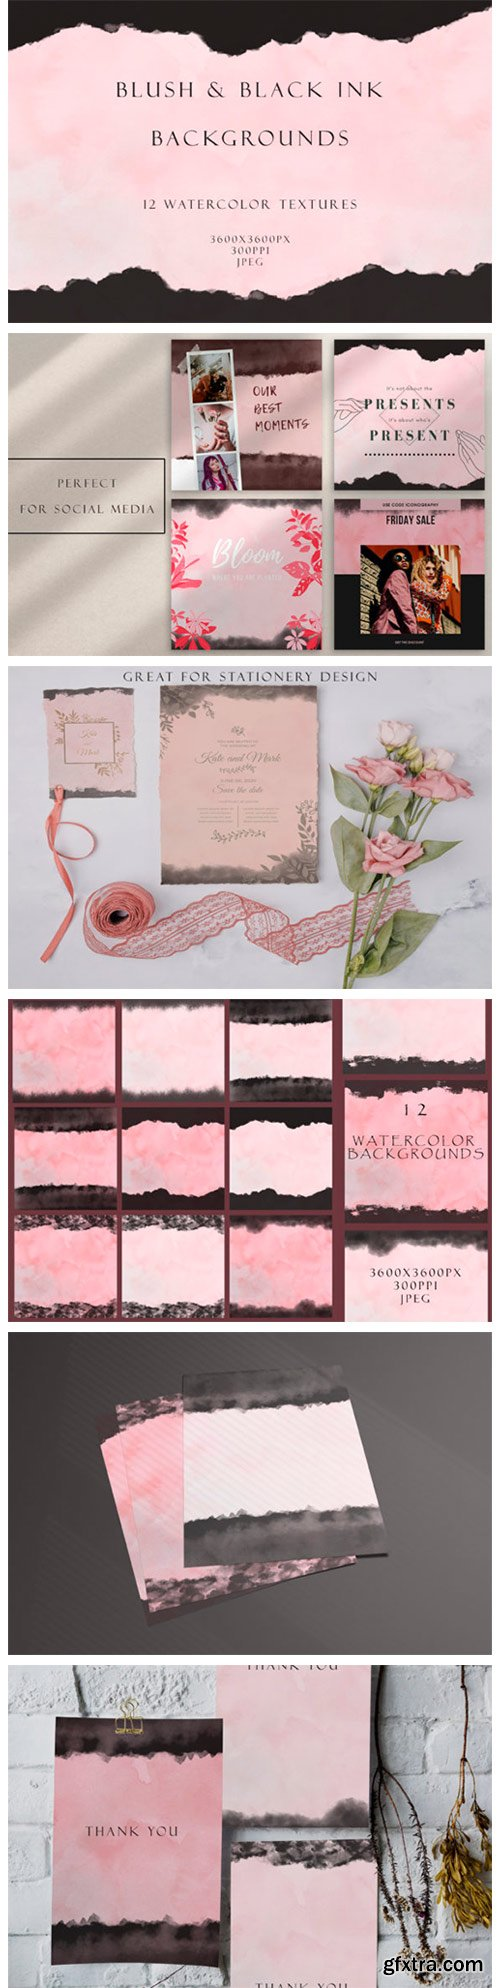 Blush and Ink Watercolor Backgrounds 4577094